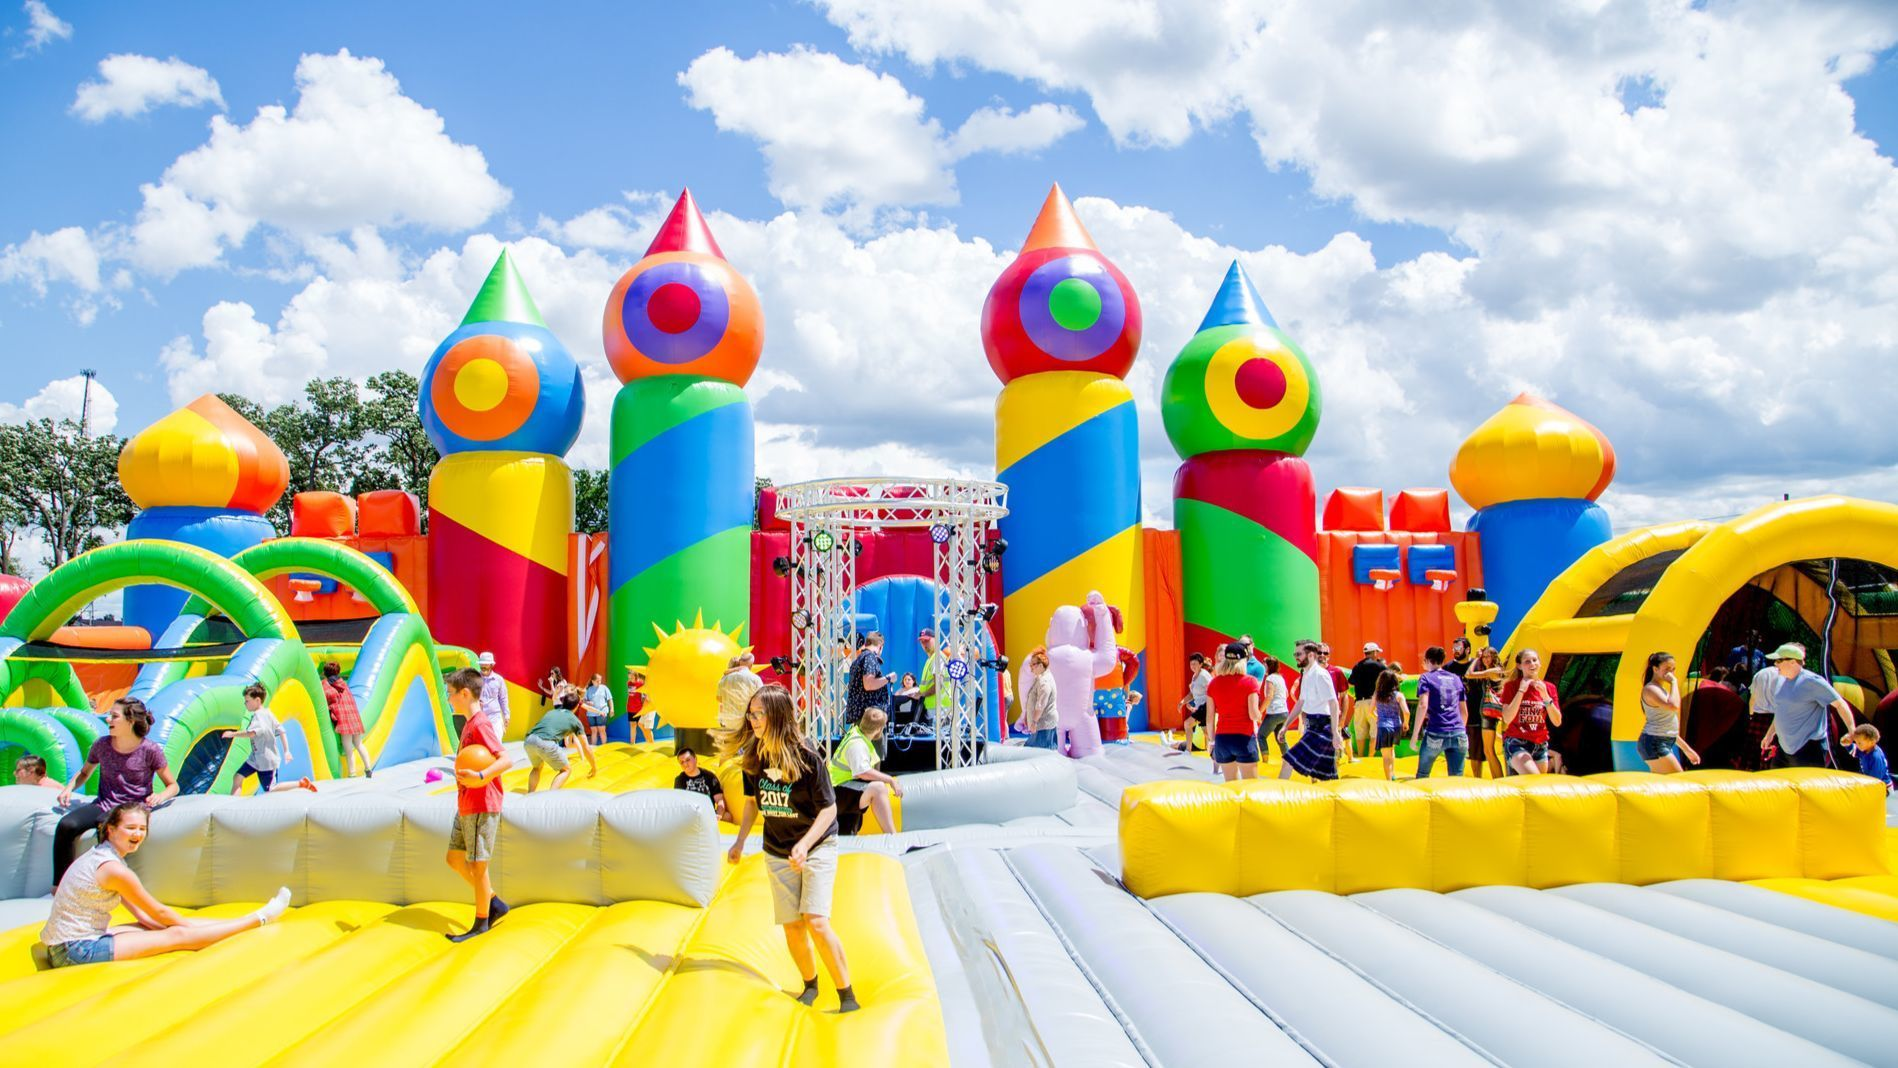 World's biggest bounce house coming to Boca Raton and Miramar, and even adults are invited